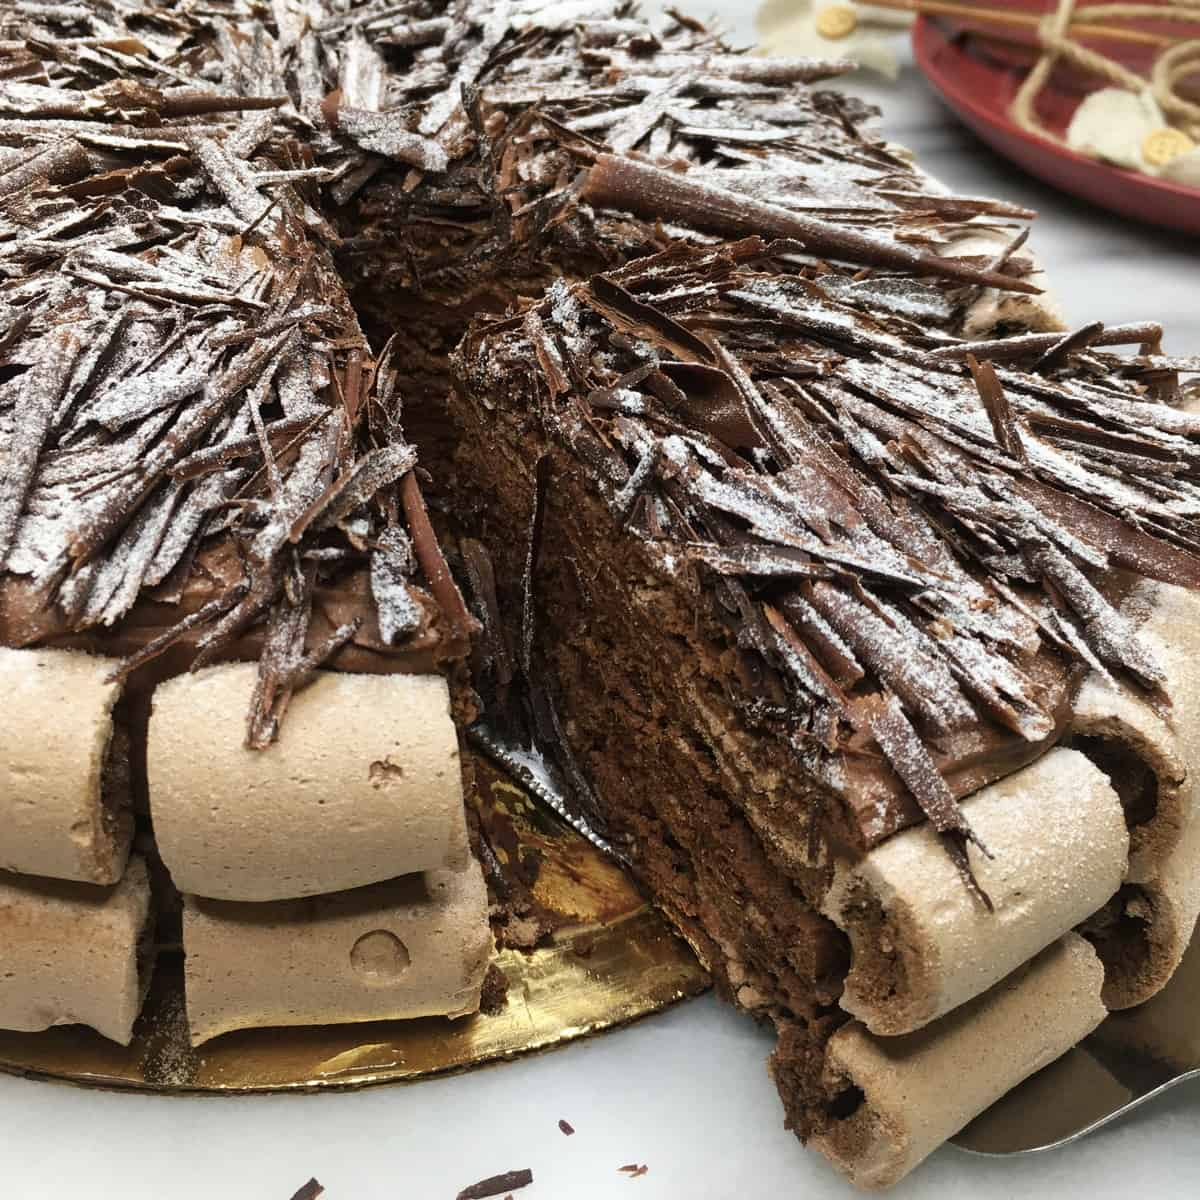 Sliced chocolate meringue cake Concorde on a cake board